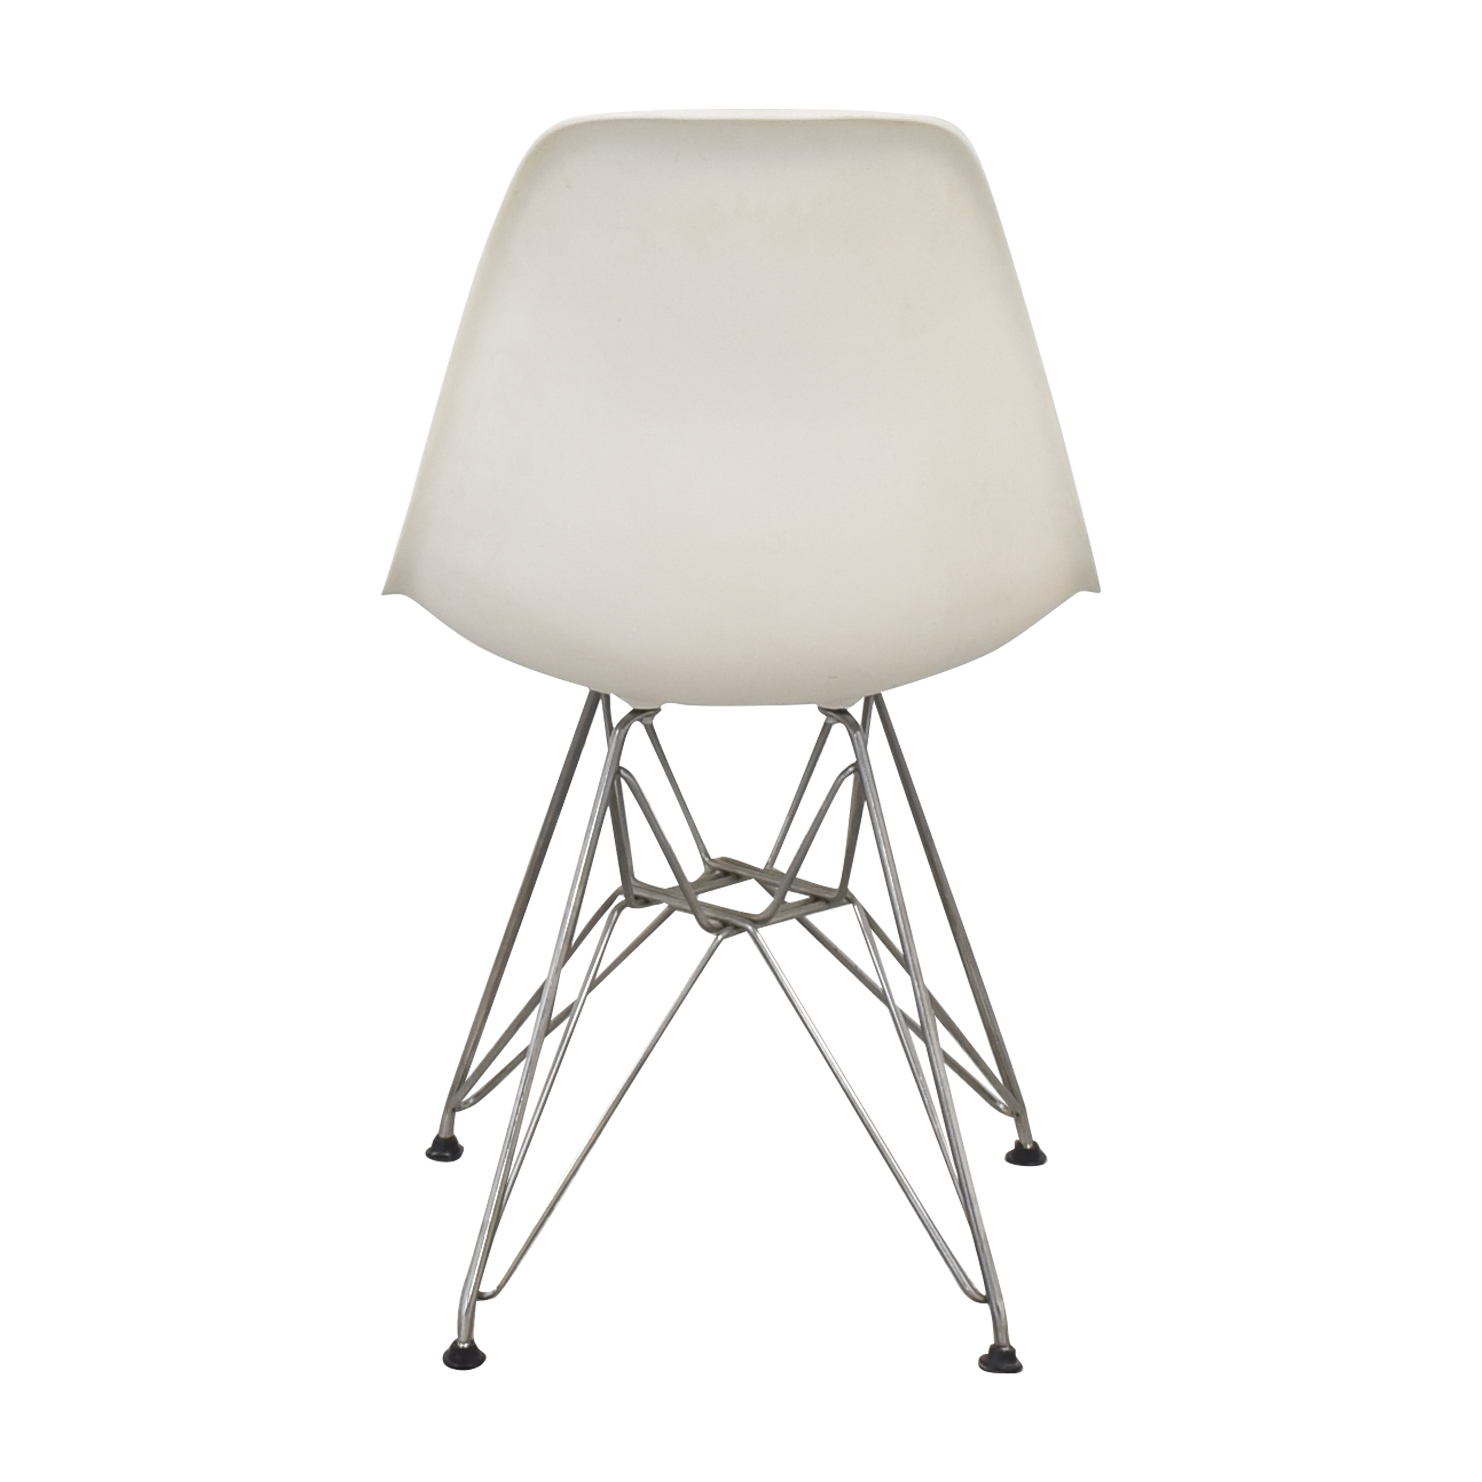 Herman Miller Herman Miller Eames Molded Plastic Dining Chair with Wire Base price